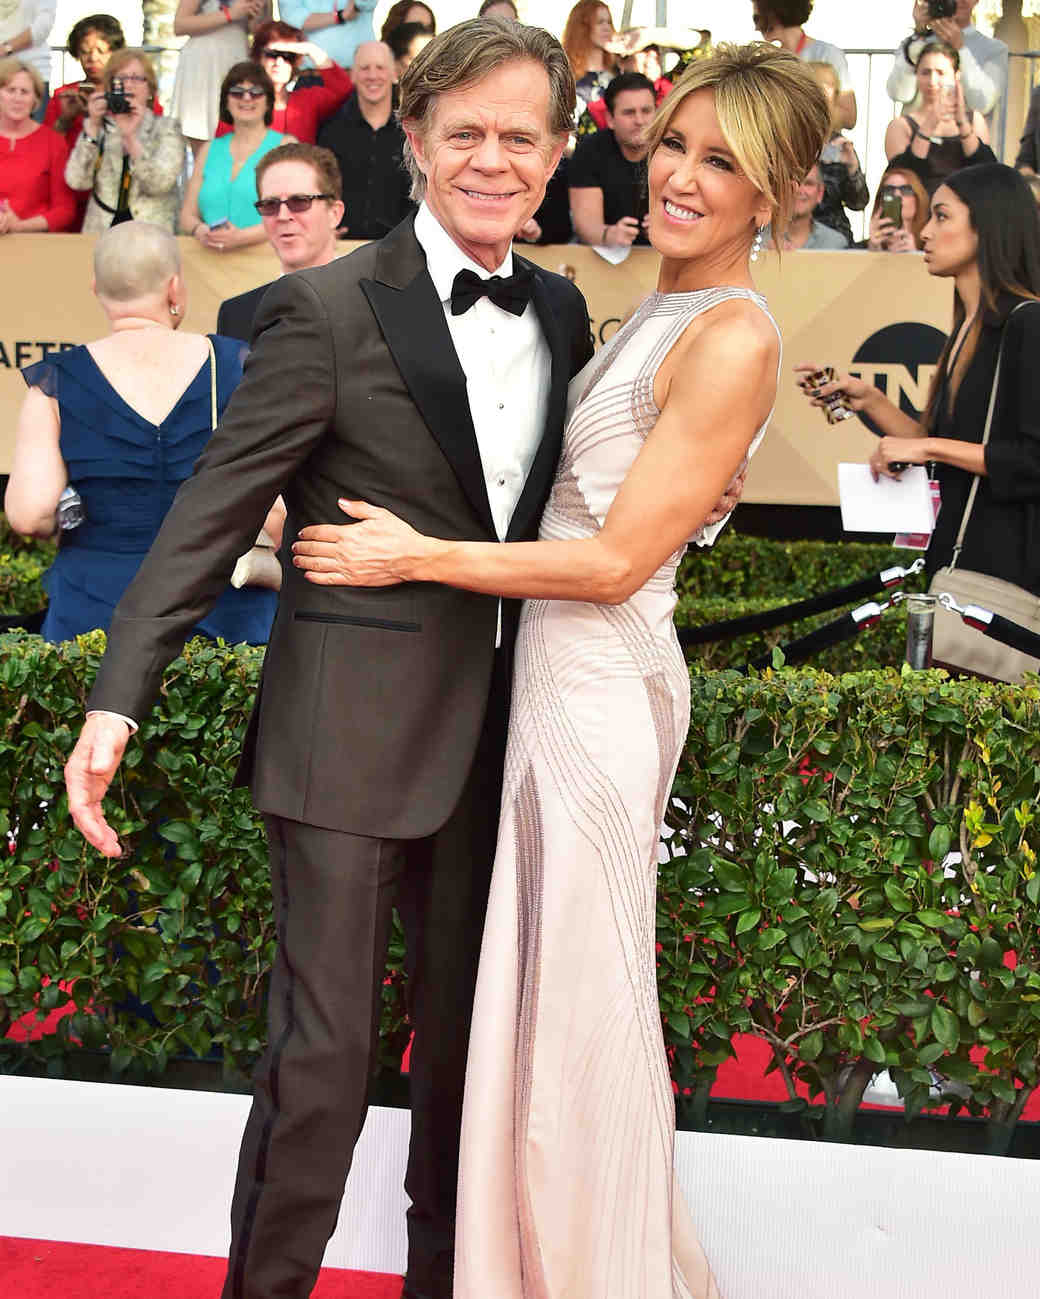 William H. Macy & Felicity Huffman Sag Awards 2017